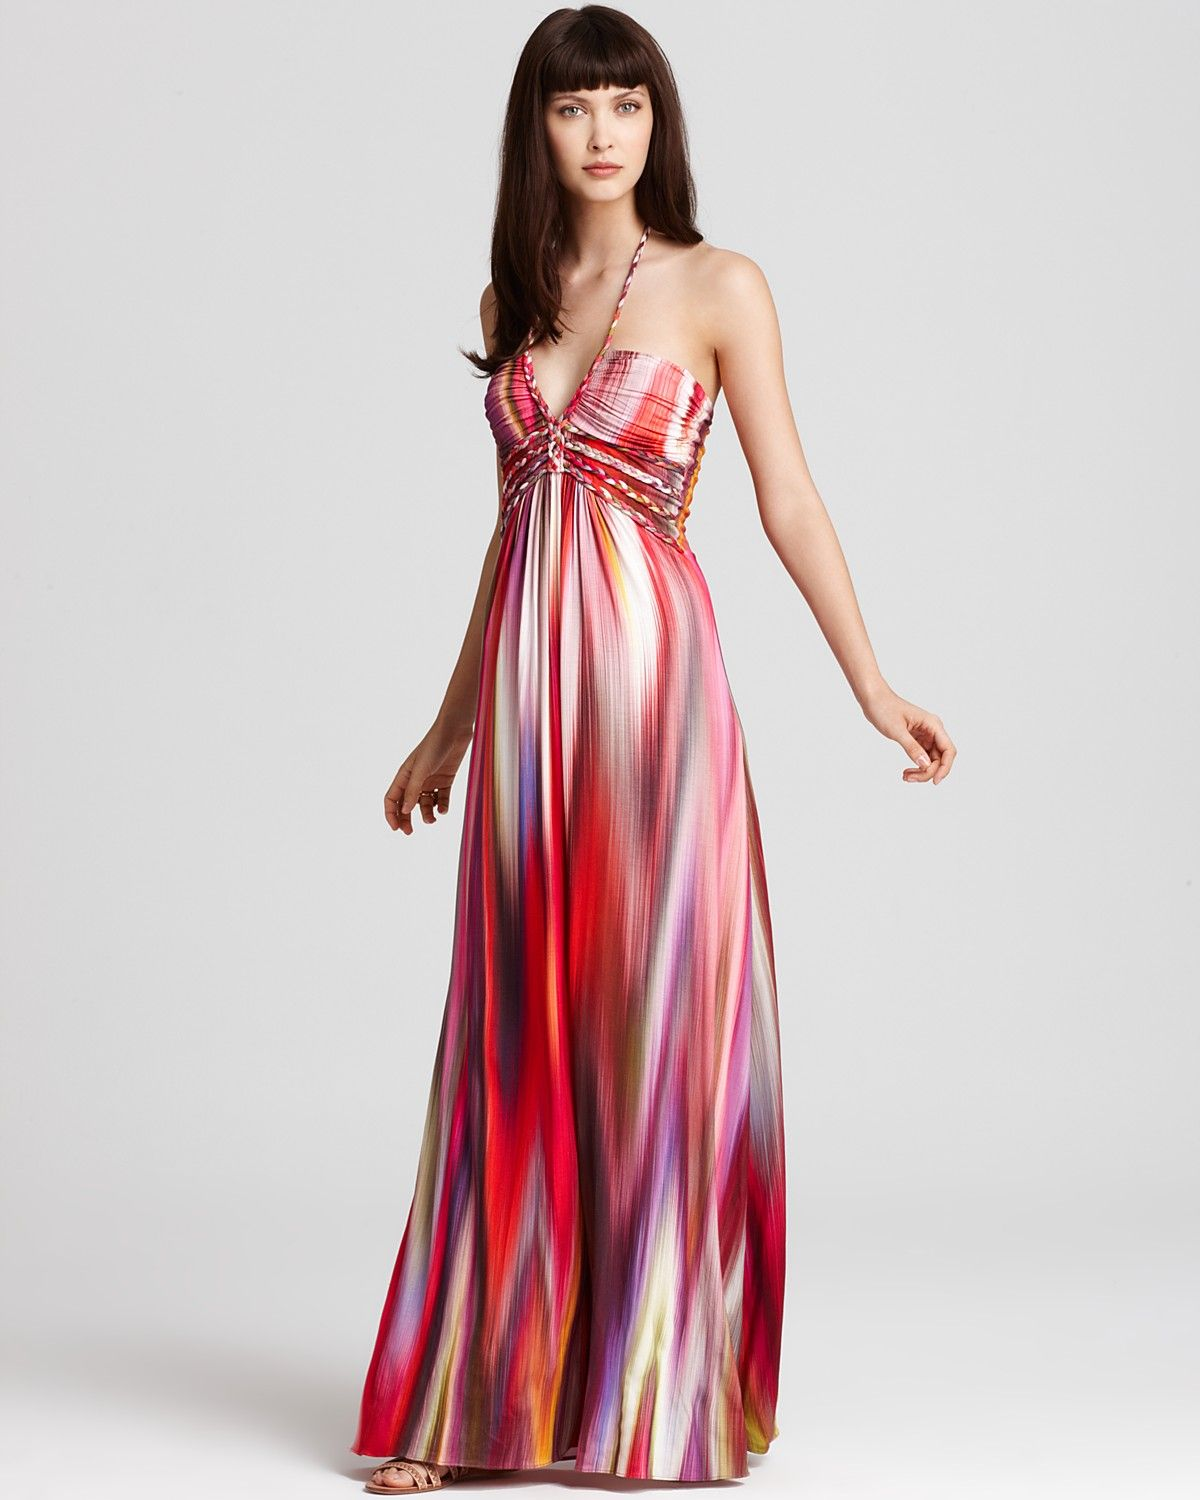 2e99188907 Sky Dress - Tie Dye Halter Maxi - Dresses - Apparel - Women s -  Bloomingdale s